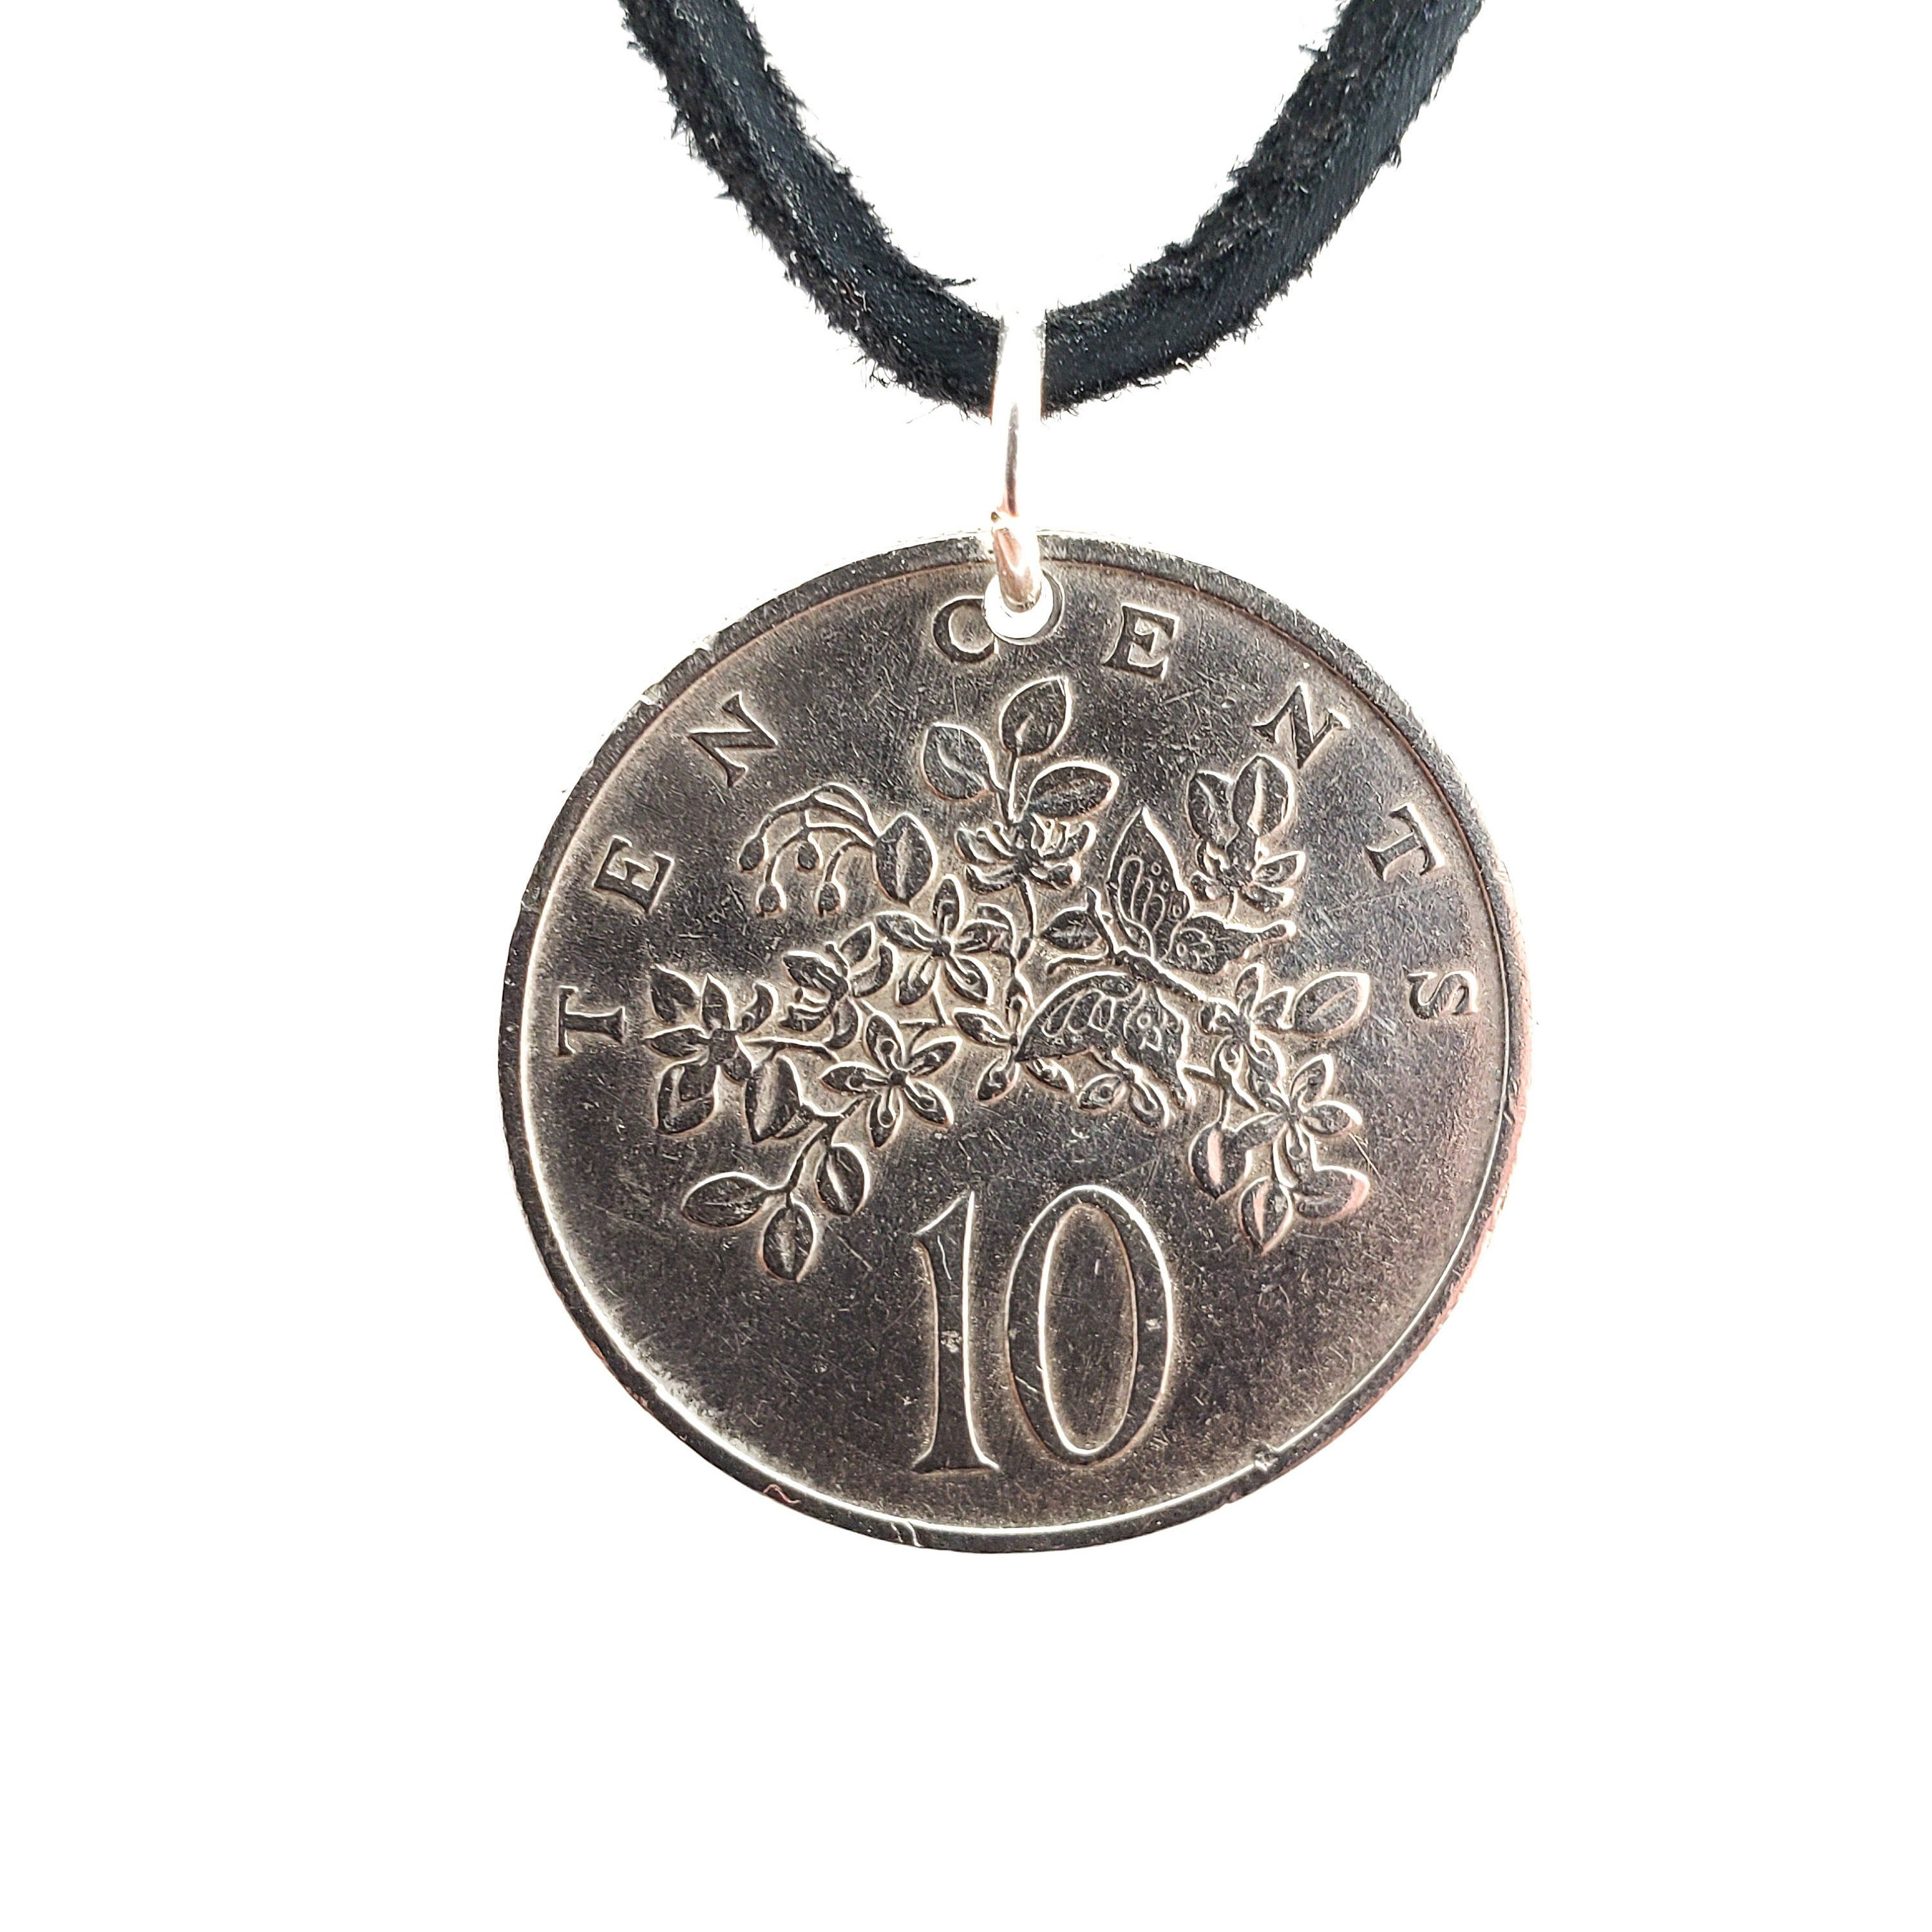 1969 Jamaica Coin Necklace, Butterfly Coin, 10 Cents, Coin Pendant, Leather Cord, Mens Necklace, Womens Necklace